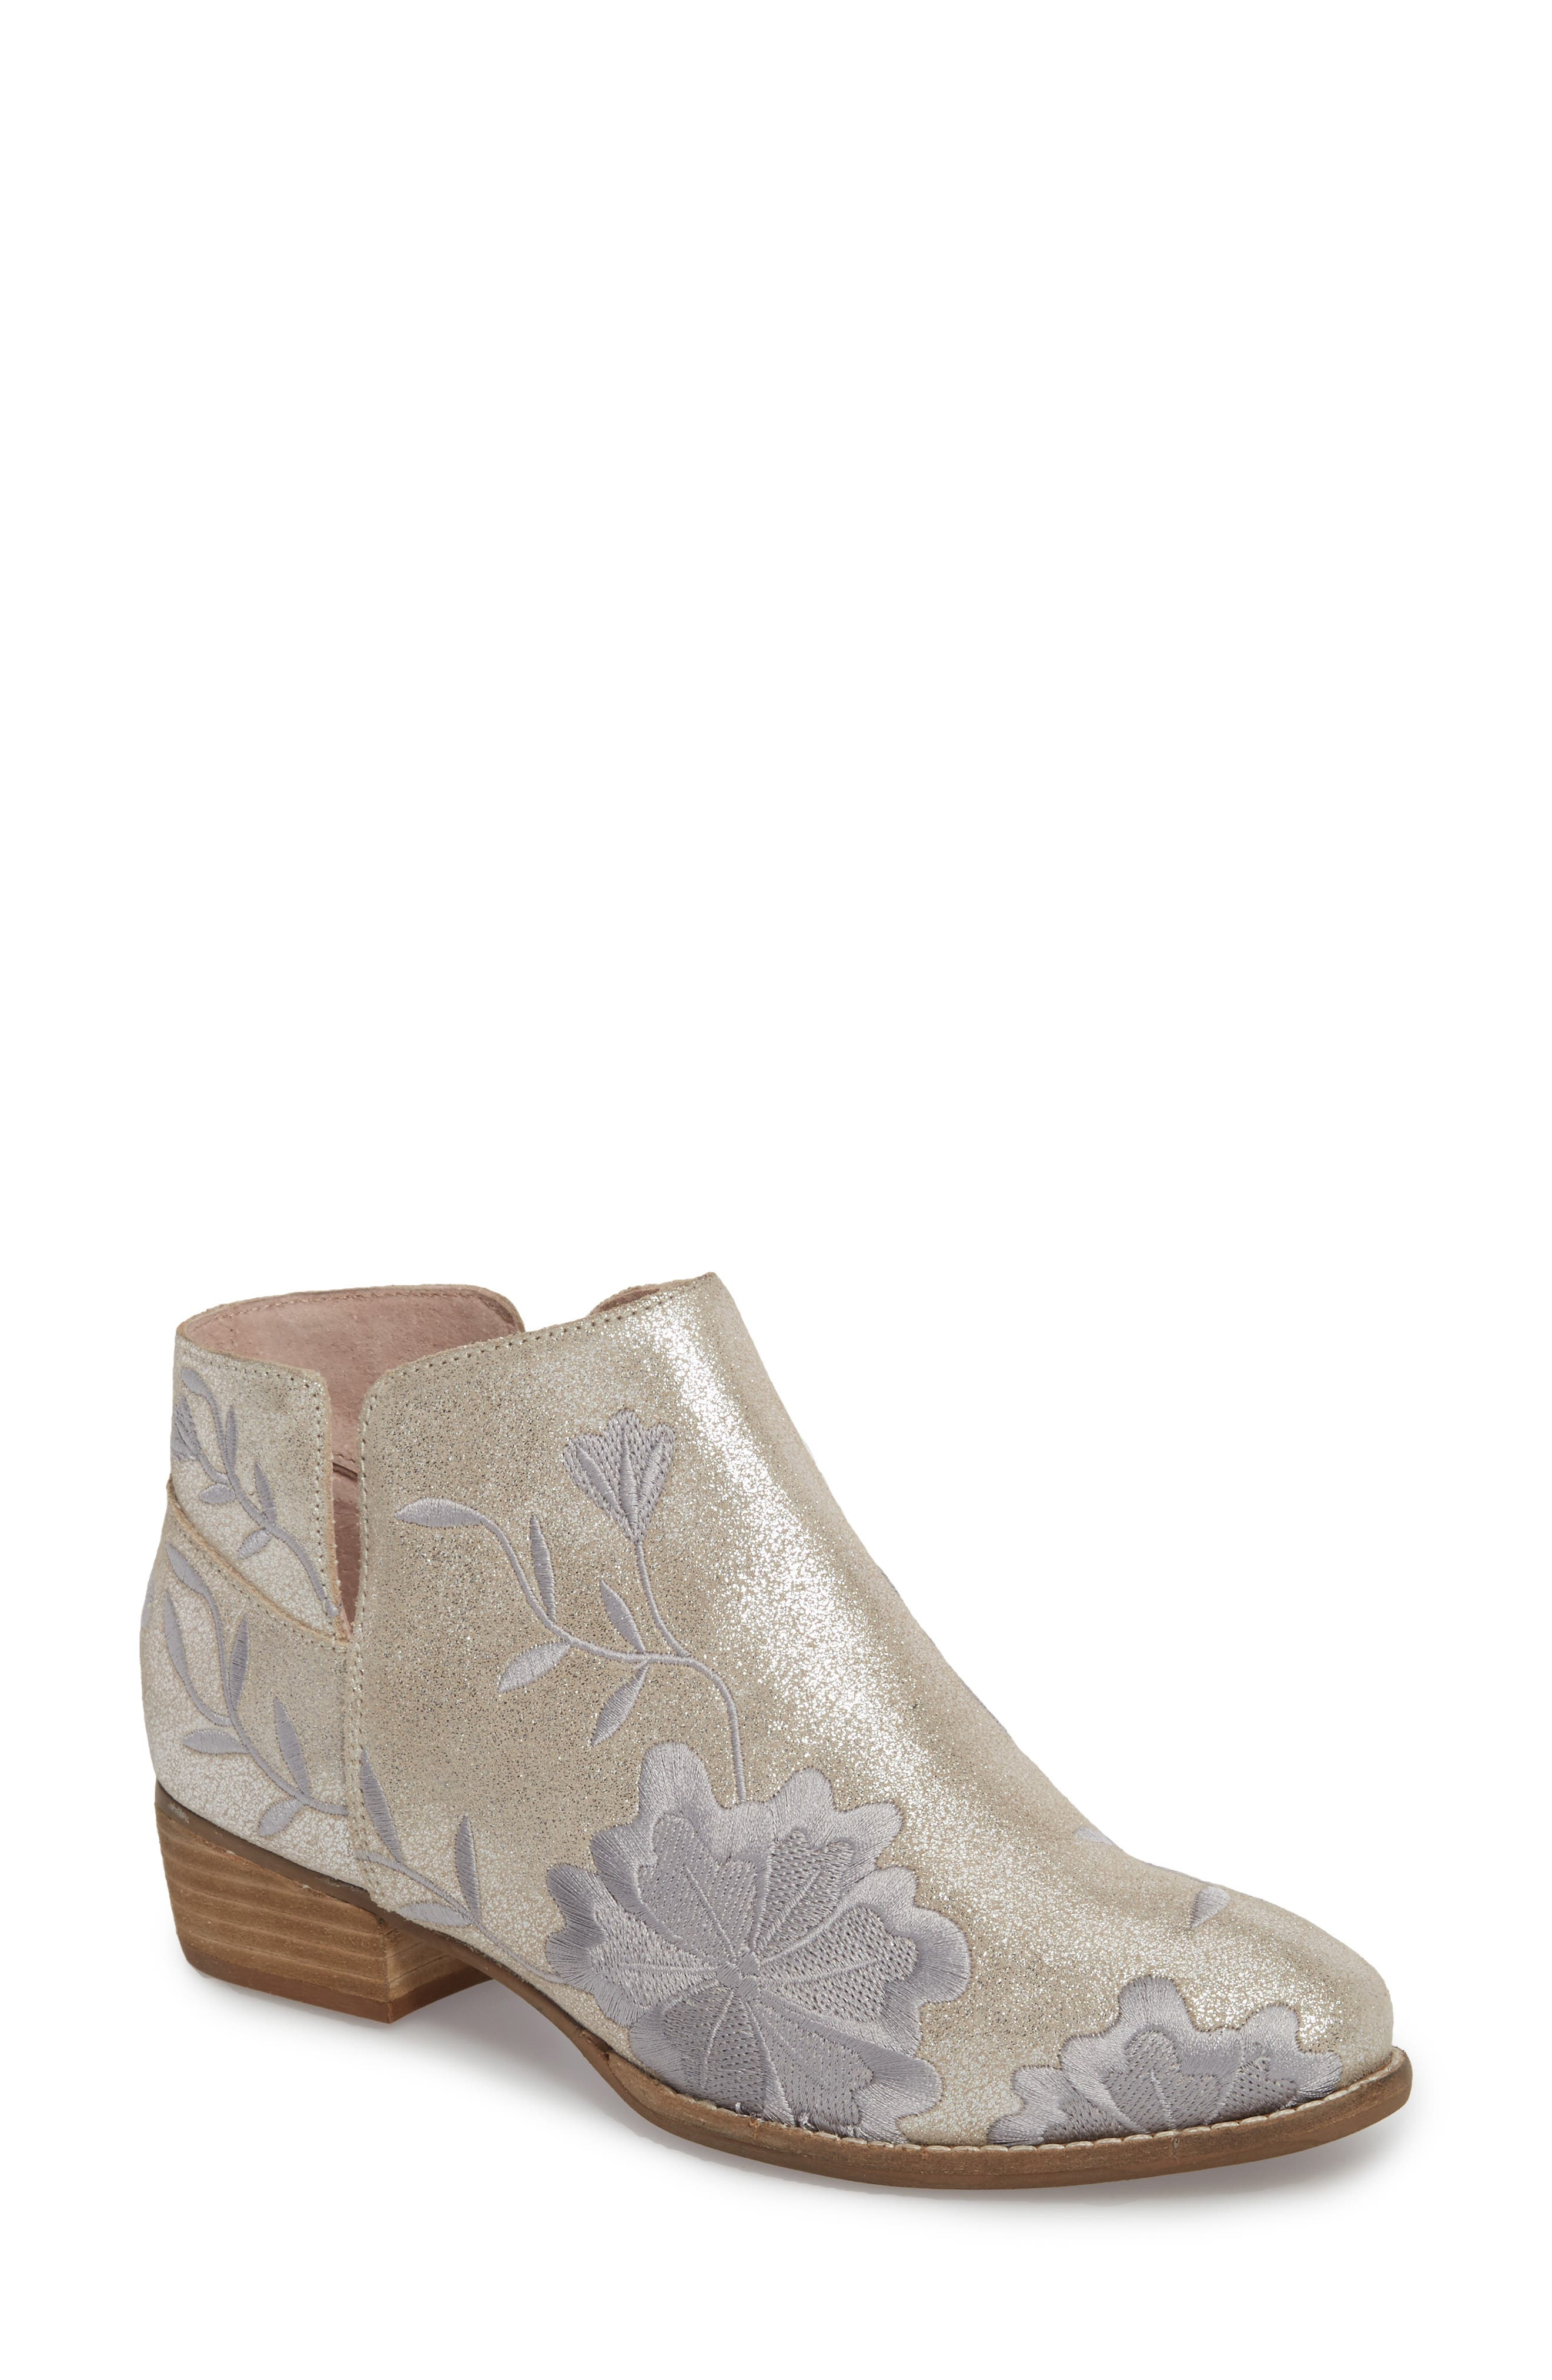 Lantern Embroidered Short Bootie,                             Main thumbnail 1, color,                             SILVER SUEDE